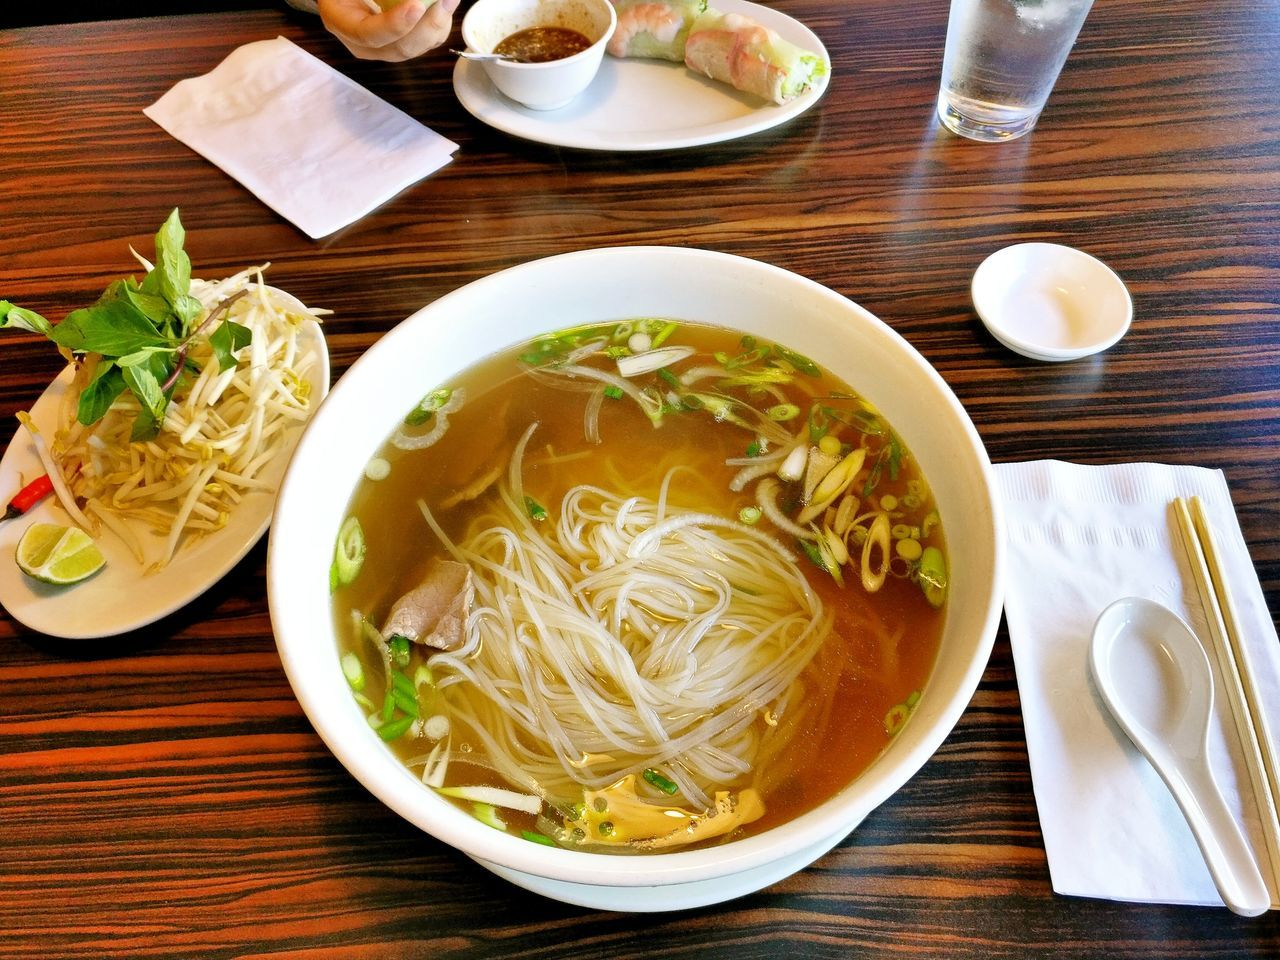 Pho-King huge bowl Ready-to-eat Freshness Food Food And Drink Healthy Eating High Angle View Bowl Serving Size Table Soup Plate No People Indoors  Close-up Day Burnsville Mn Photography Pho Vietnamese Cuisine Vietnamese Horizontal First Eyeem Photo